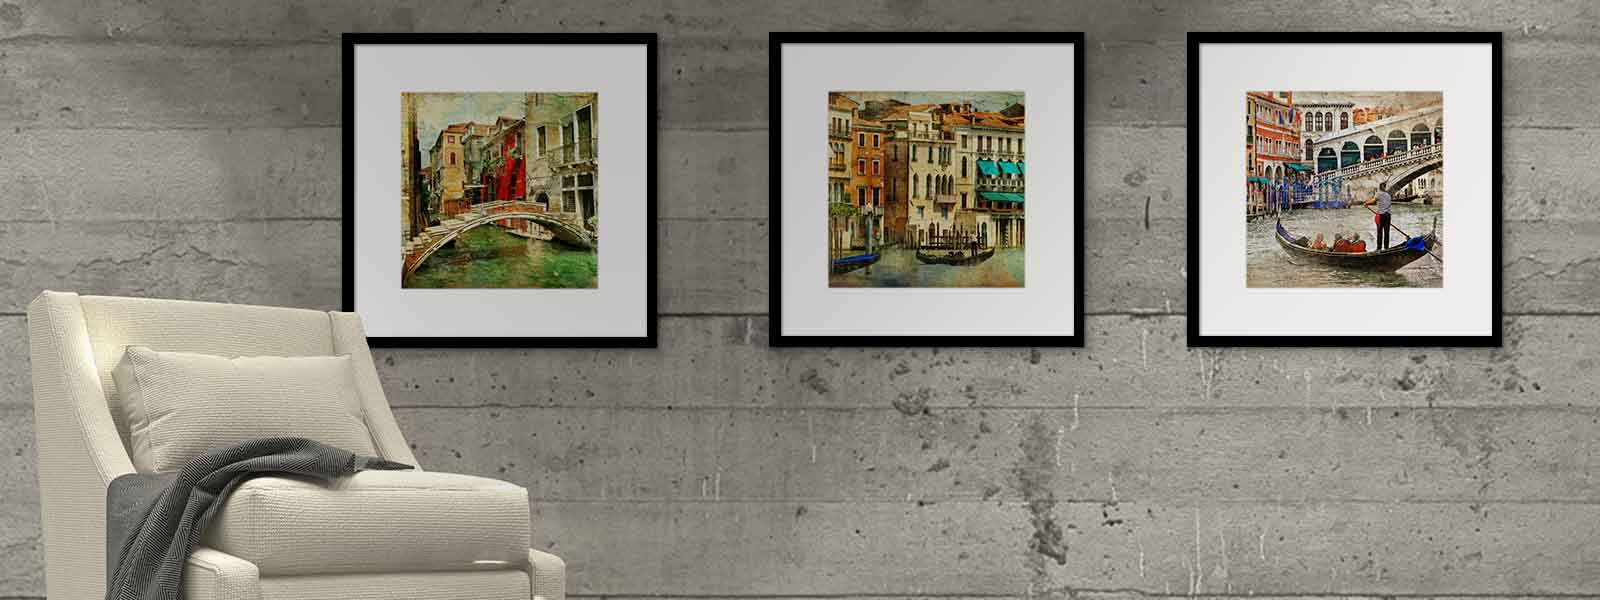 Print and Frame Your Artwork or Photos Online. Order Now!